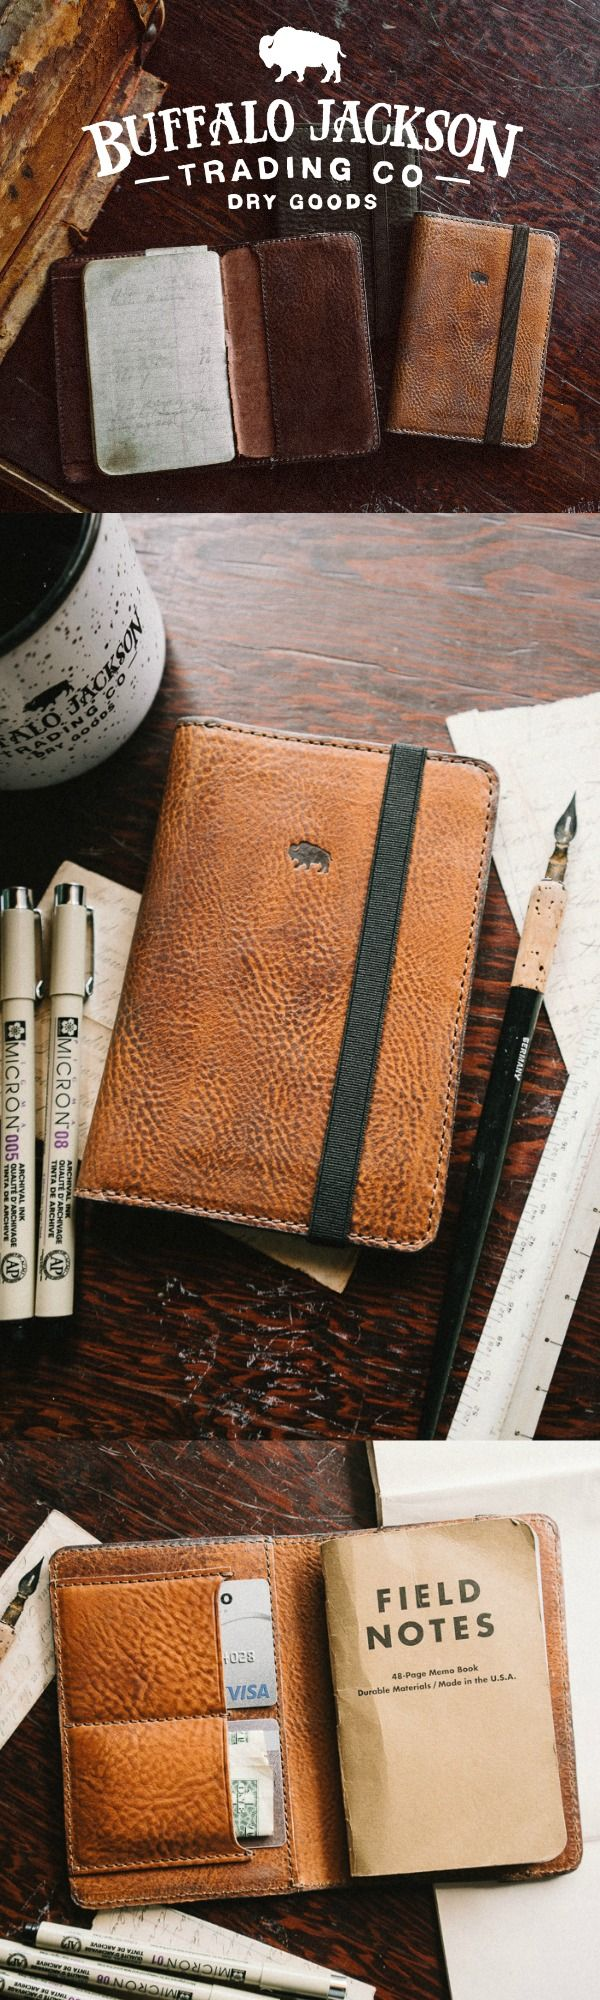 The Dakota vintage leather field notes wallet / cover. Outfitted with an elastic strap to keep your journal and its contents snug. Creative gift for him - for work or travel, business or adventure.